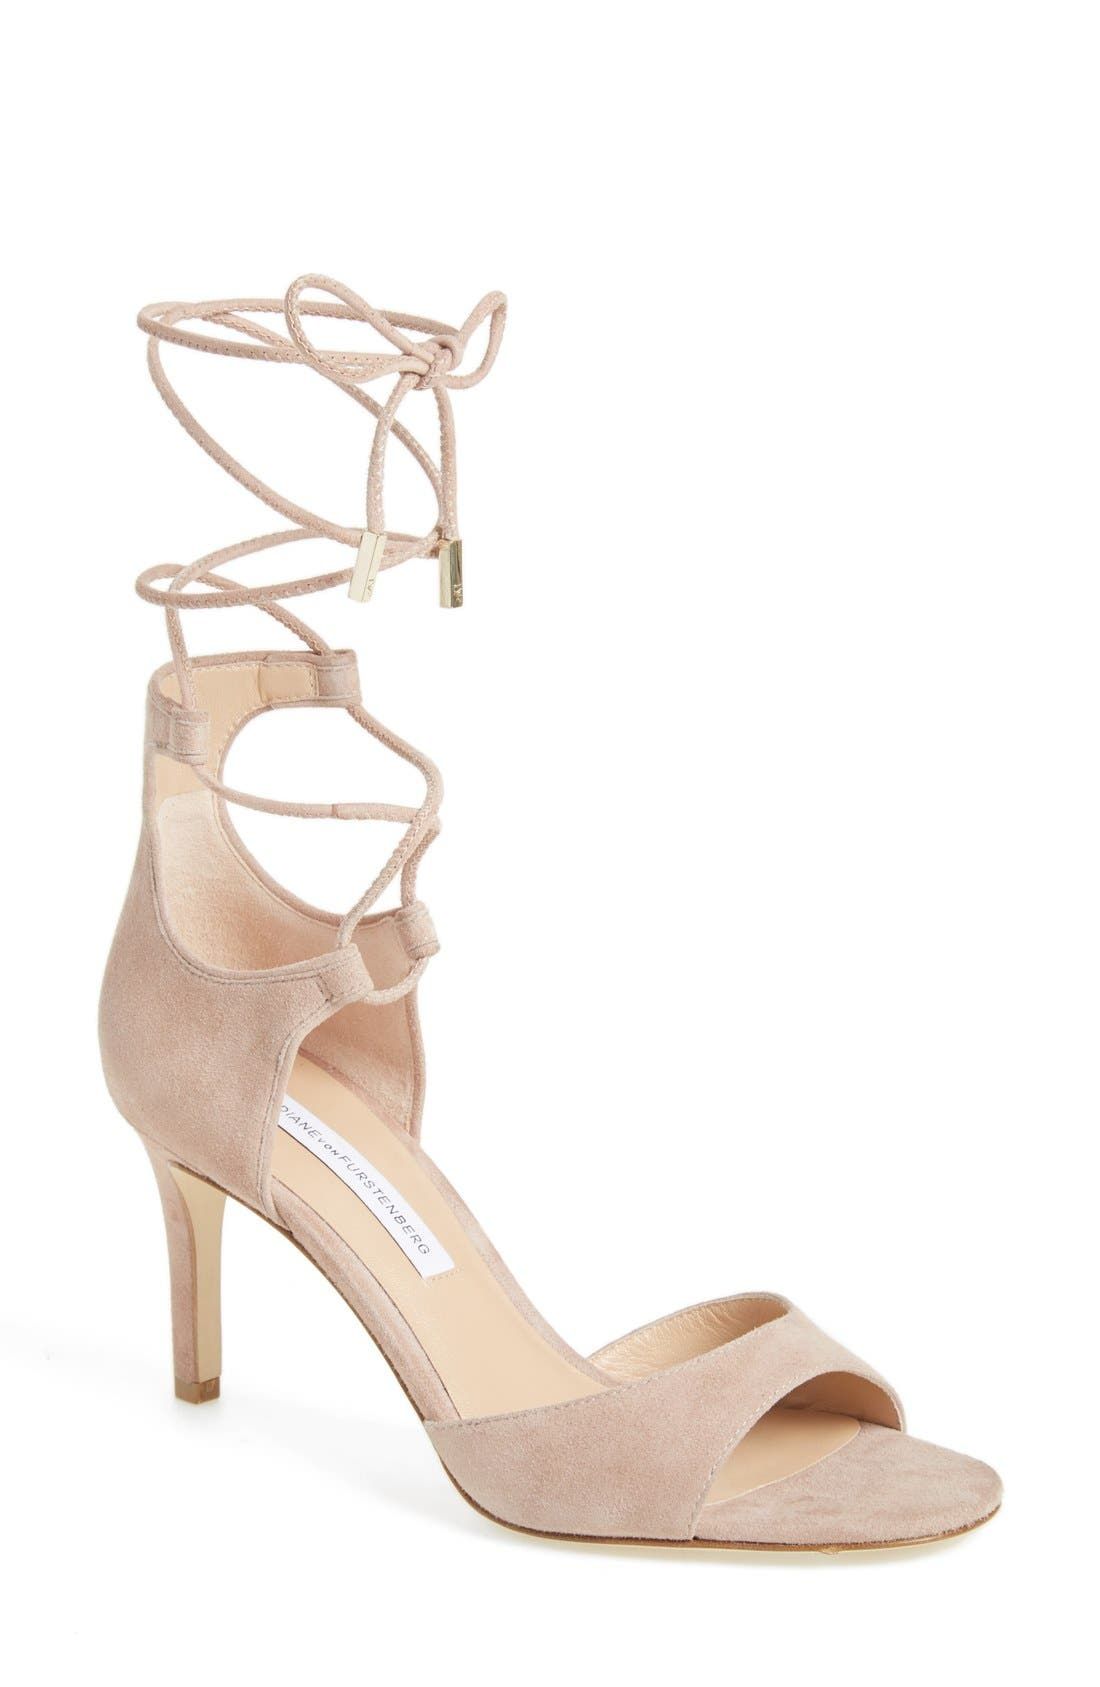 Alternate Image 1 Selected - Diane von Furstenberg 'Rimini' Ankle Wrap Sandal (Women)